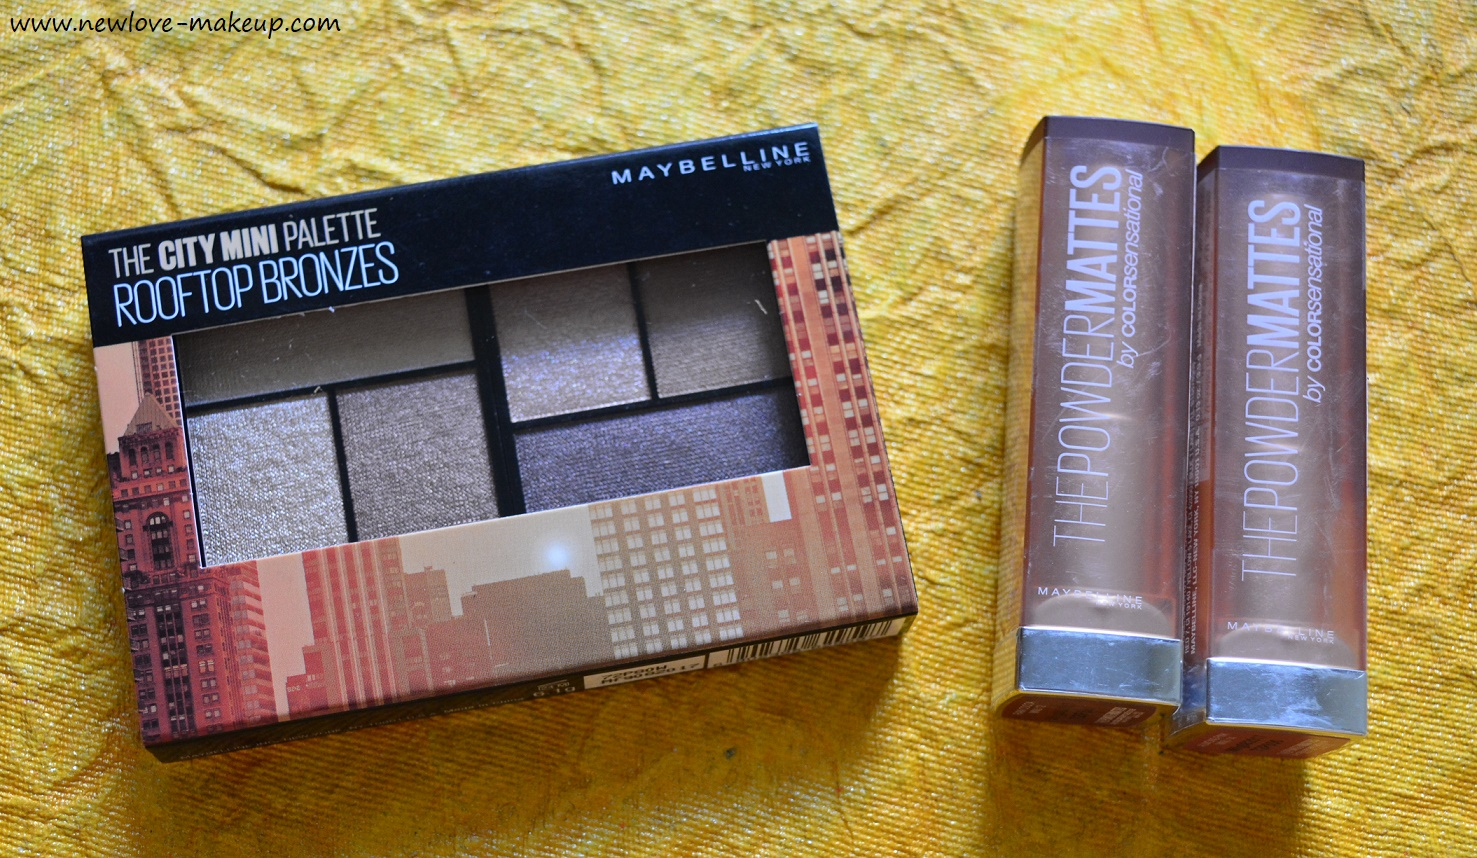 Maybelline India New Launches Review | City Mini Palettes, Inti-Matte Nude Lipsticks